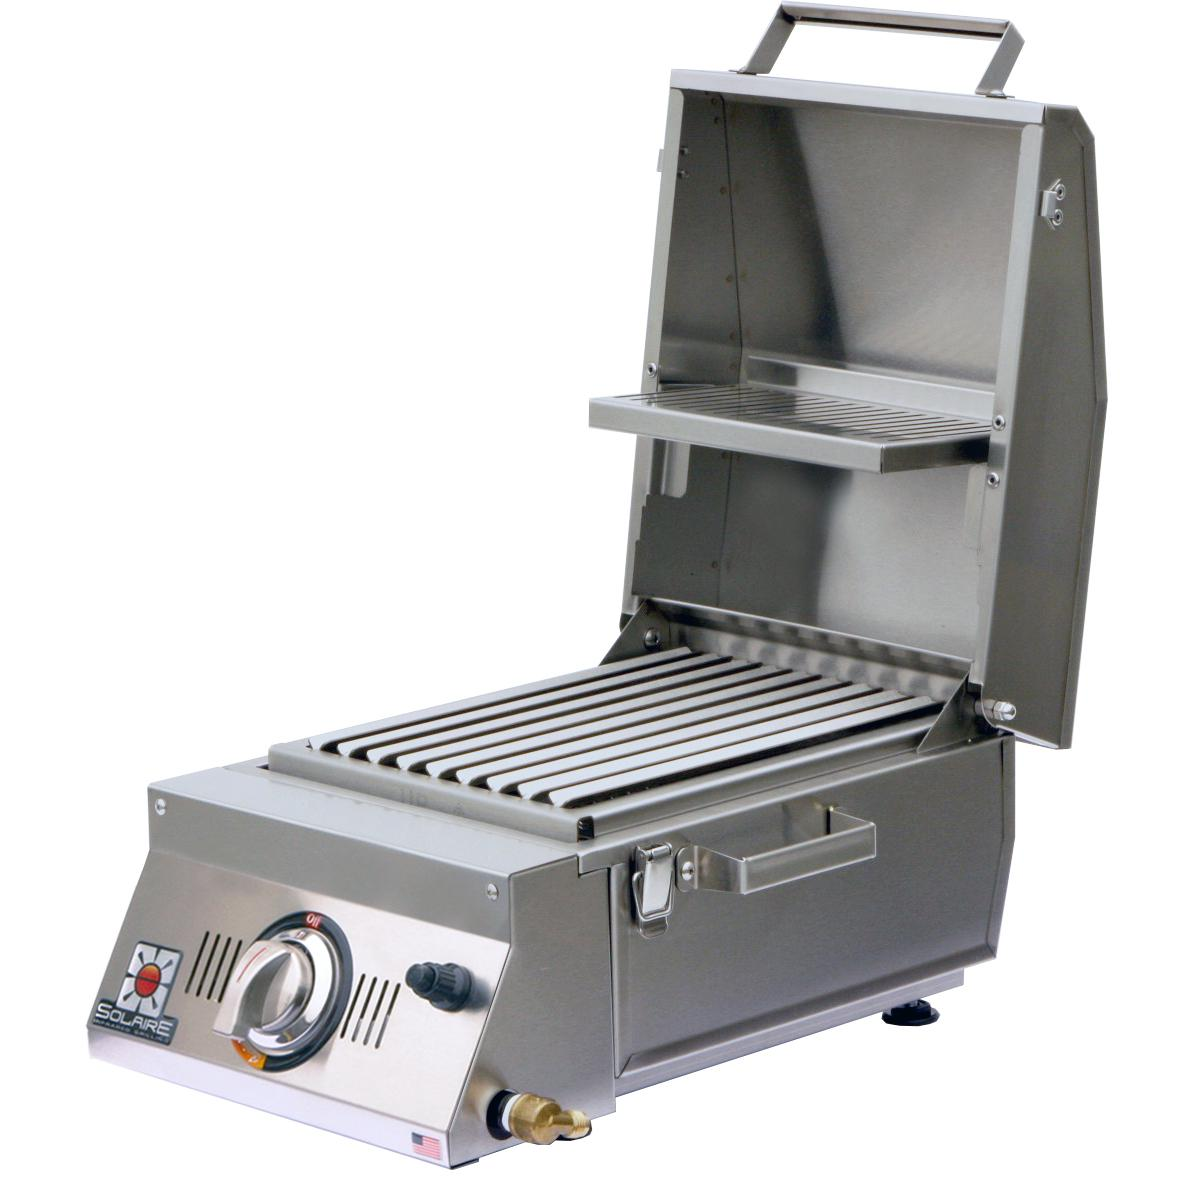 SOLAIRE AllAbout Portable Infrared Propane Gas Grill - SO...